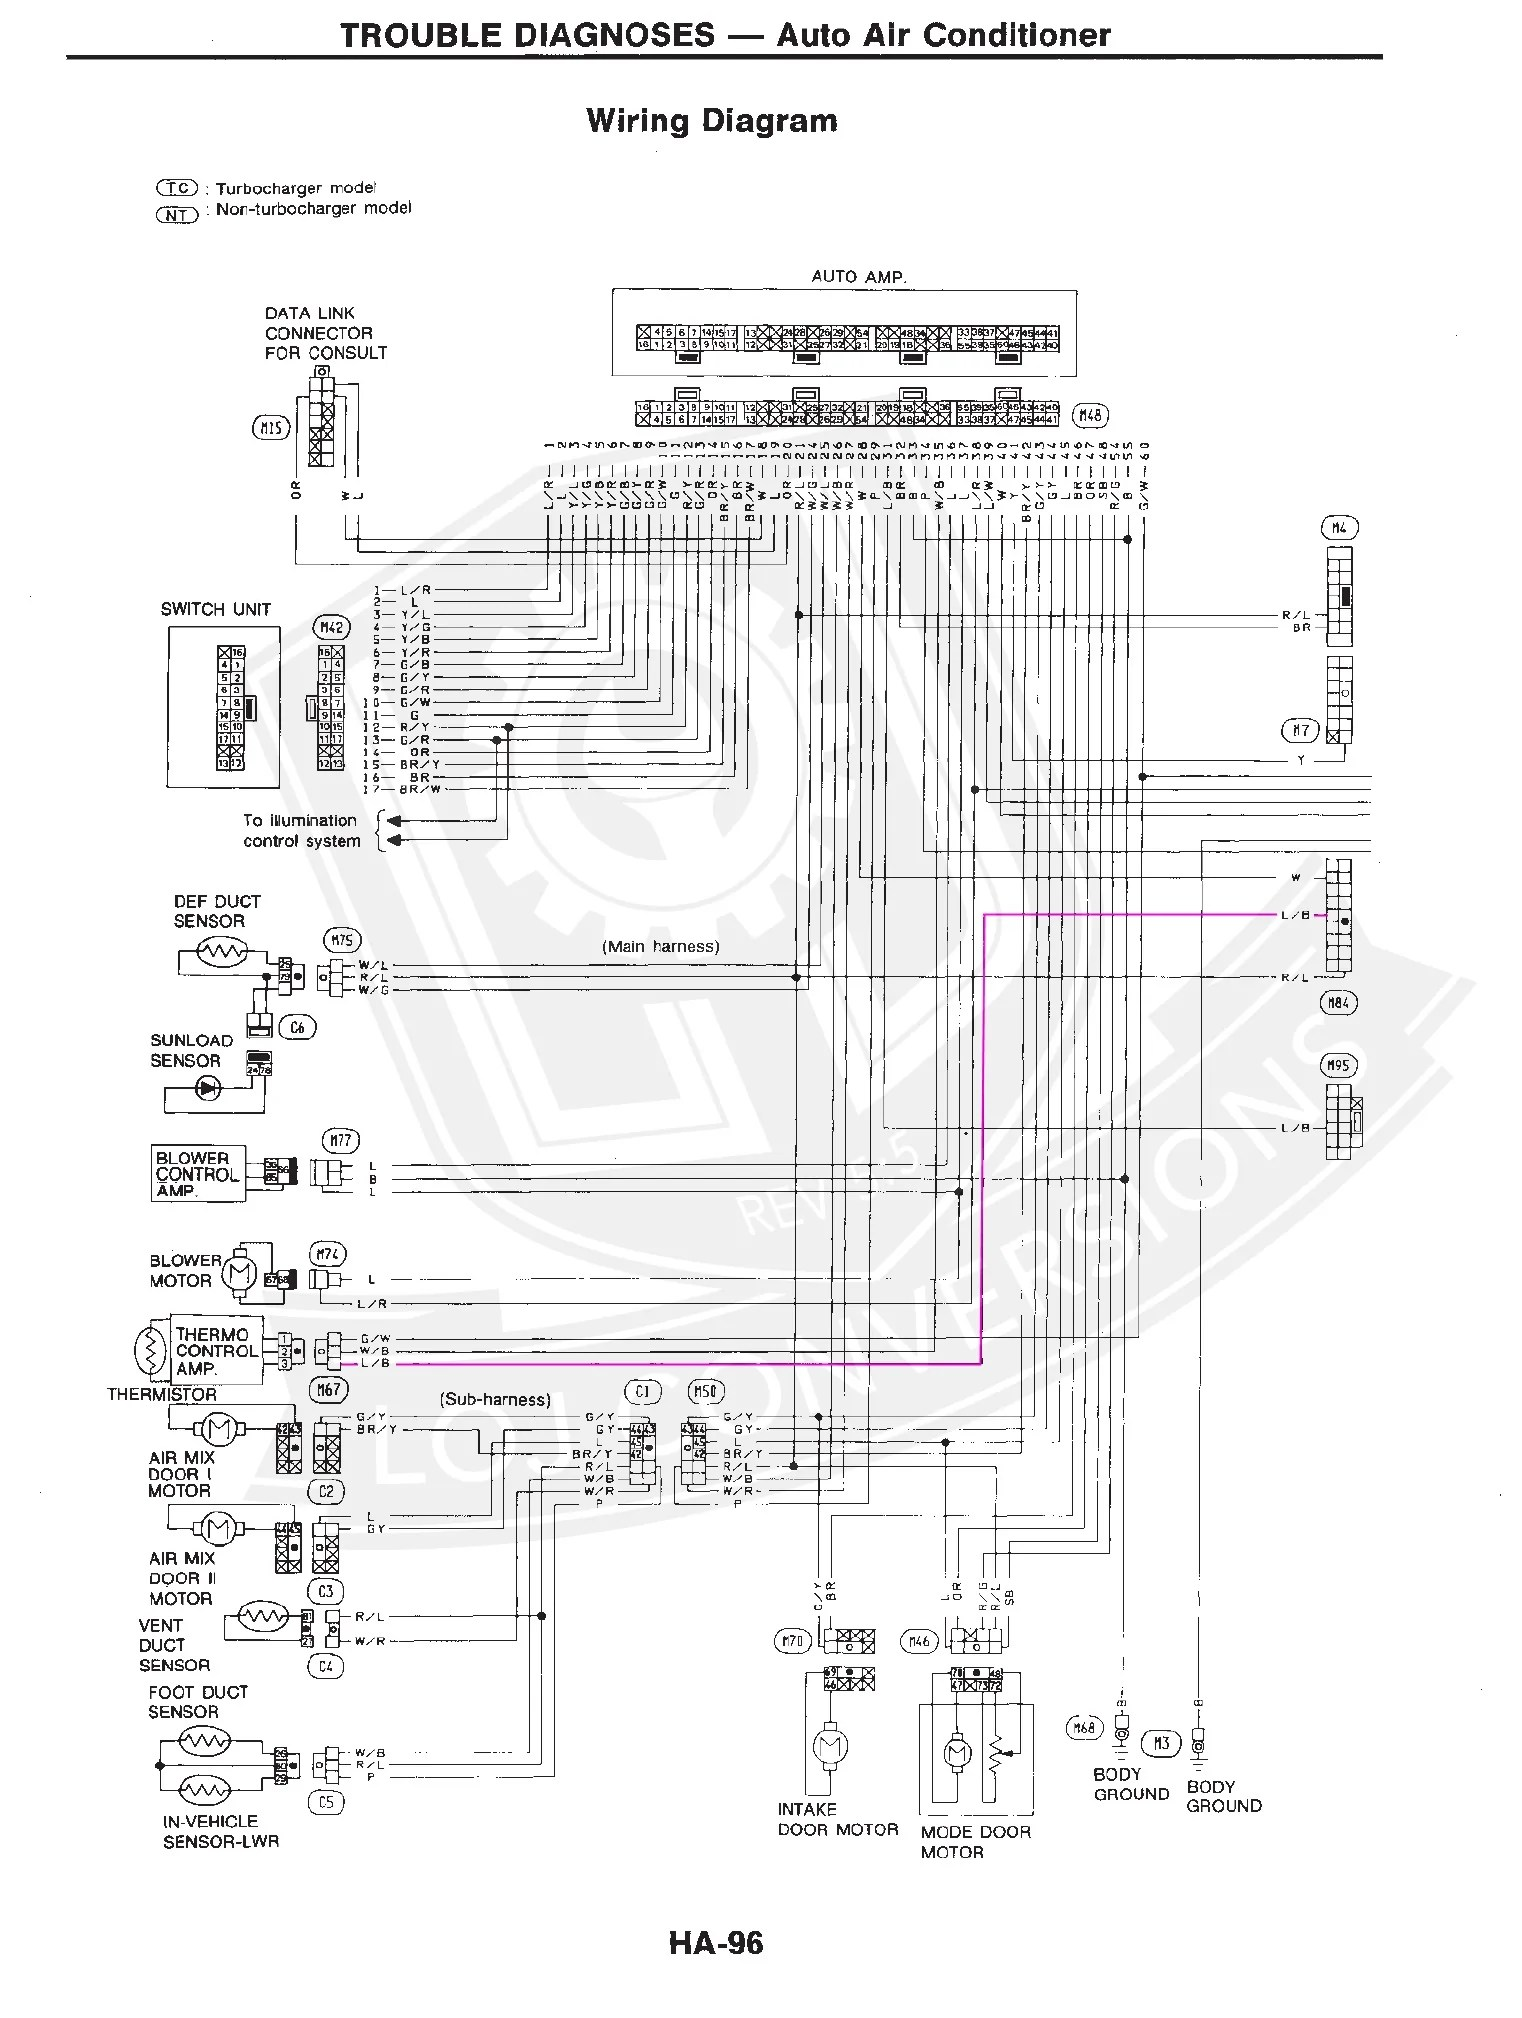 small resolution of wiring diagram also 1990 nissan 300zx engine wiring harness further 1990 nissan 300zx wiring harness diagram